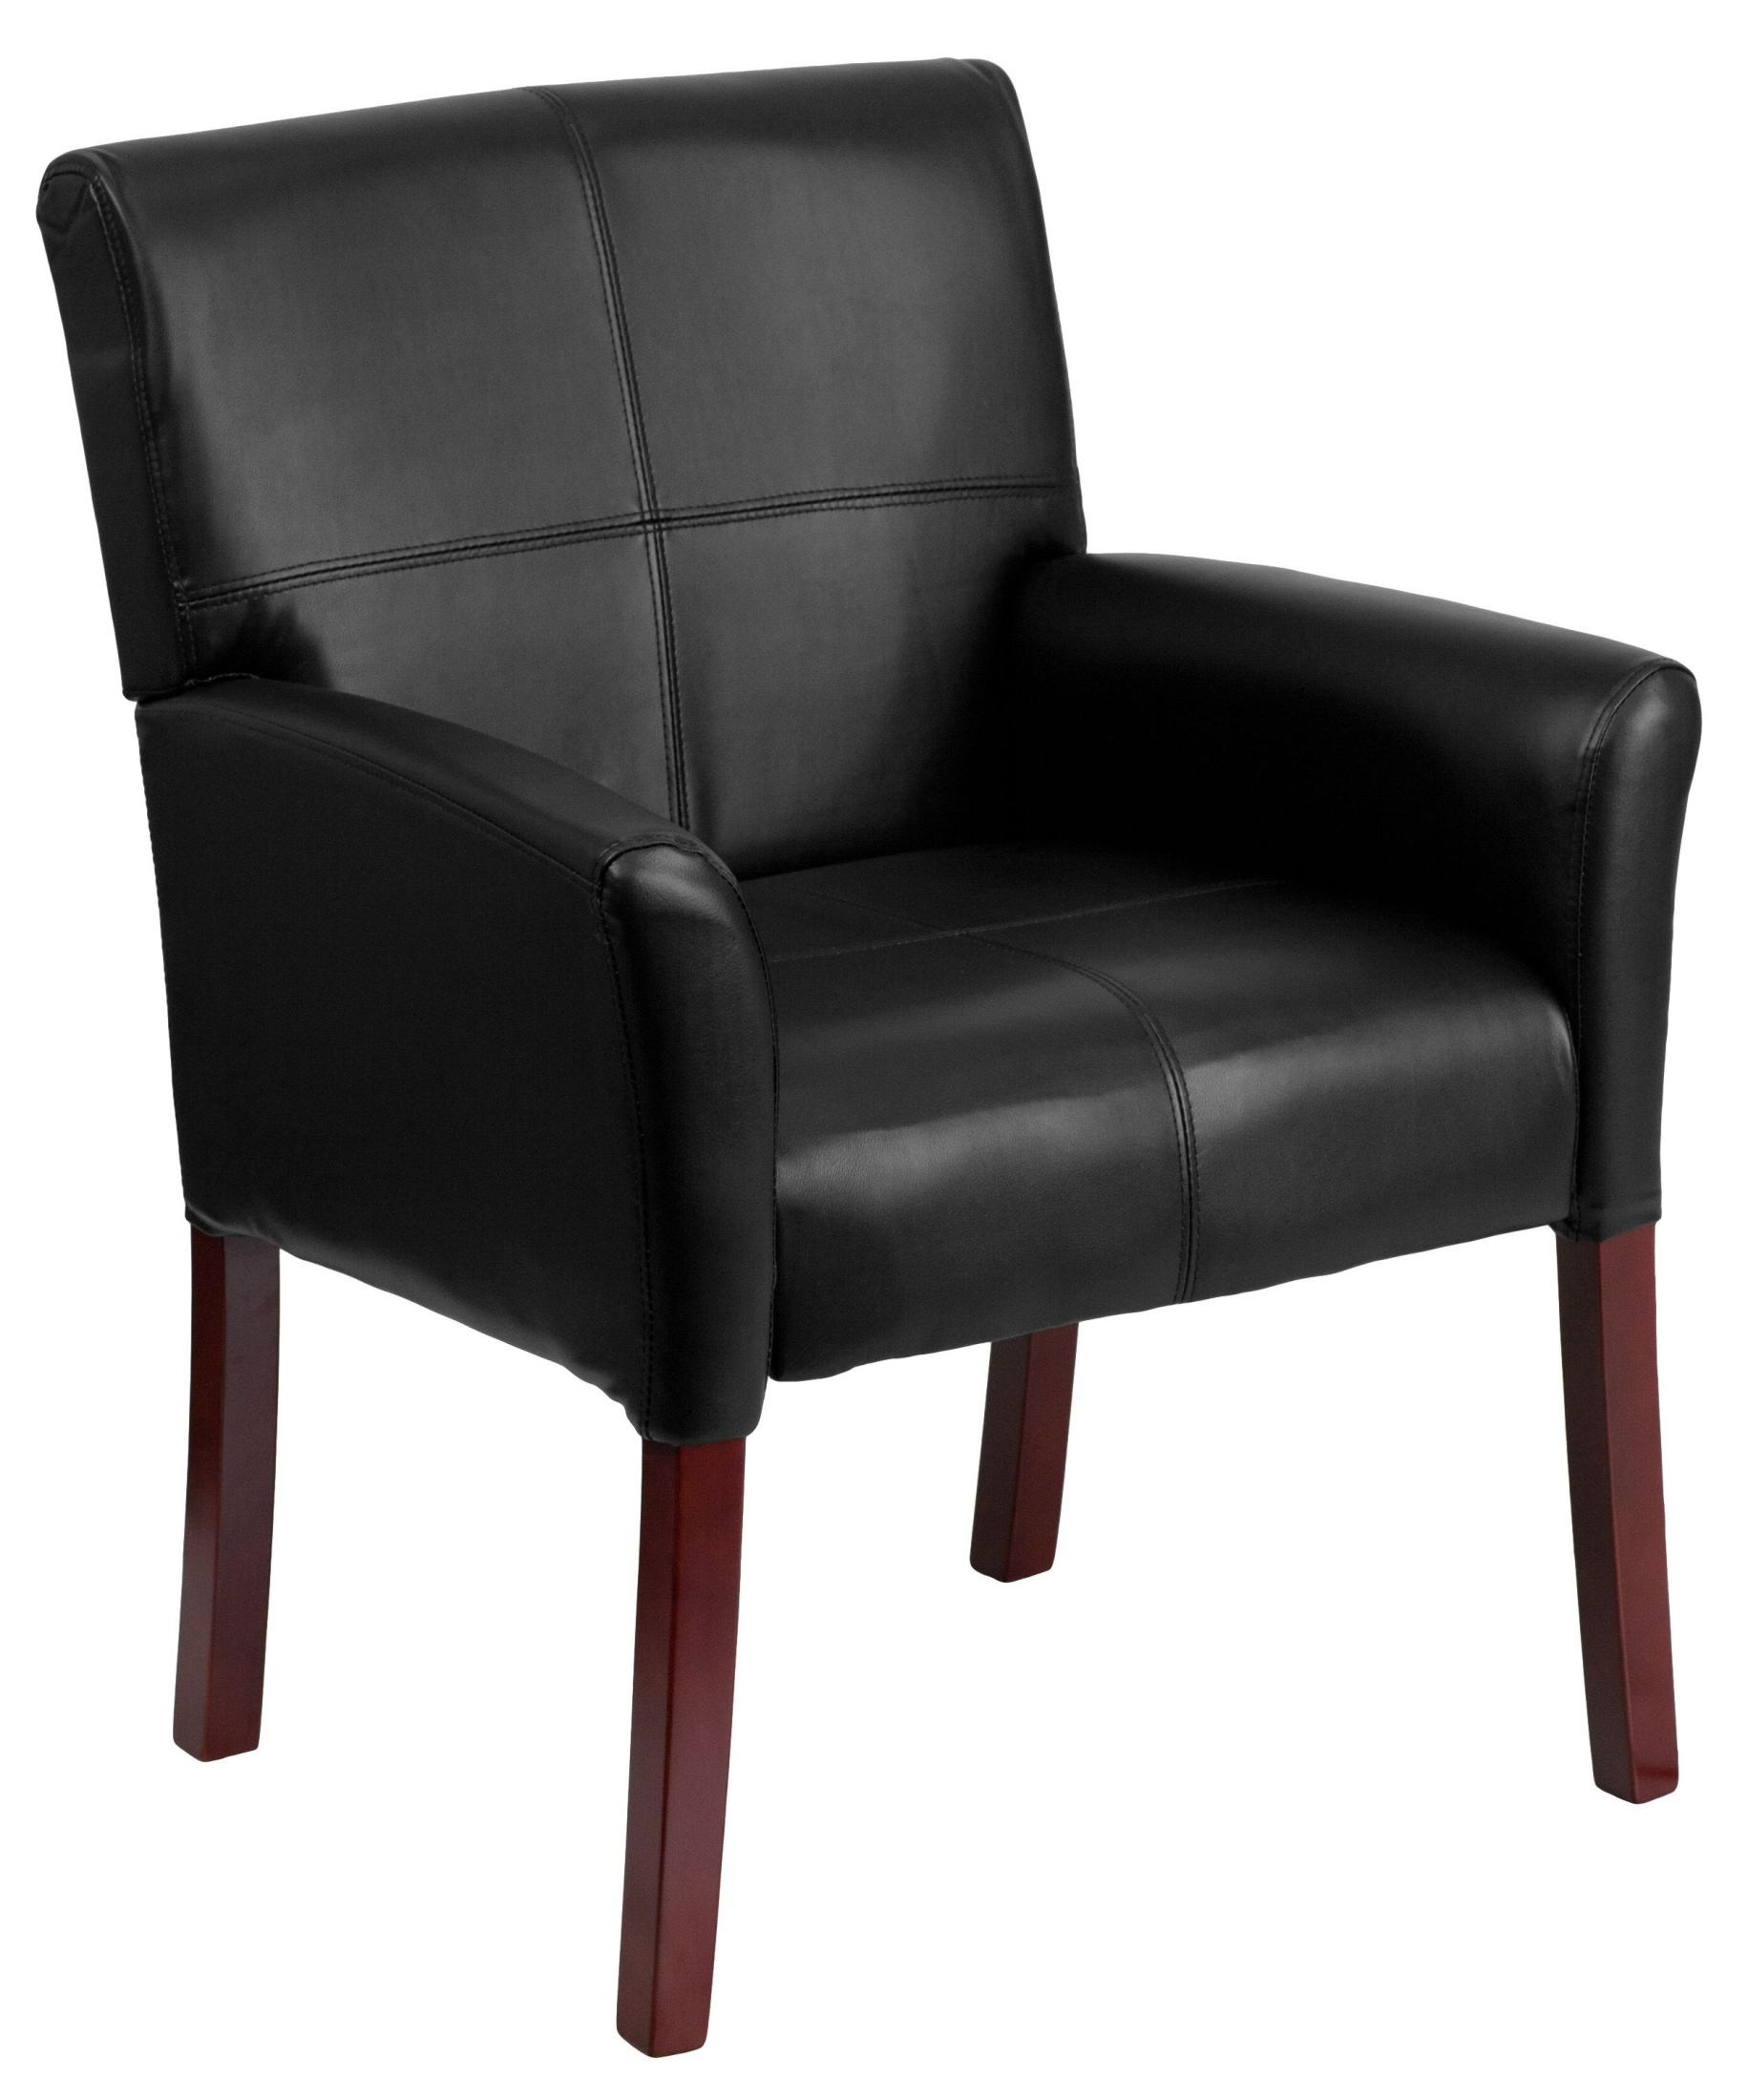 Leather Side Chair Black Bonded Leather Executive Side Chair Min Order Qty